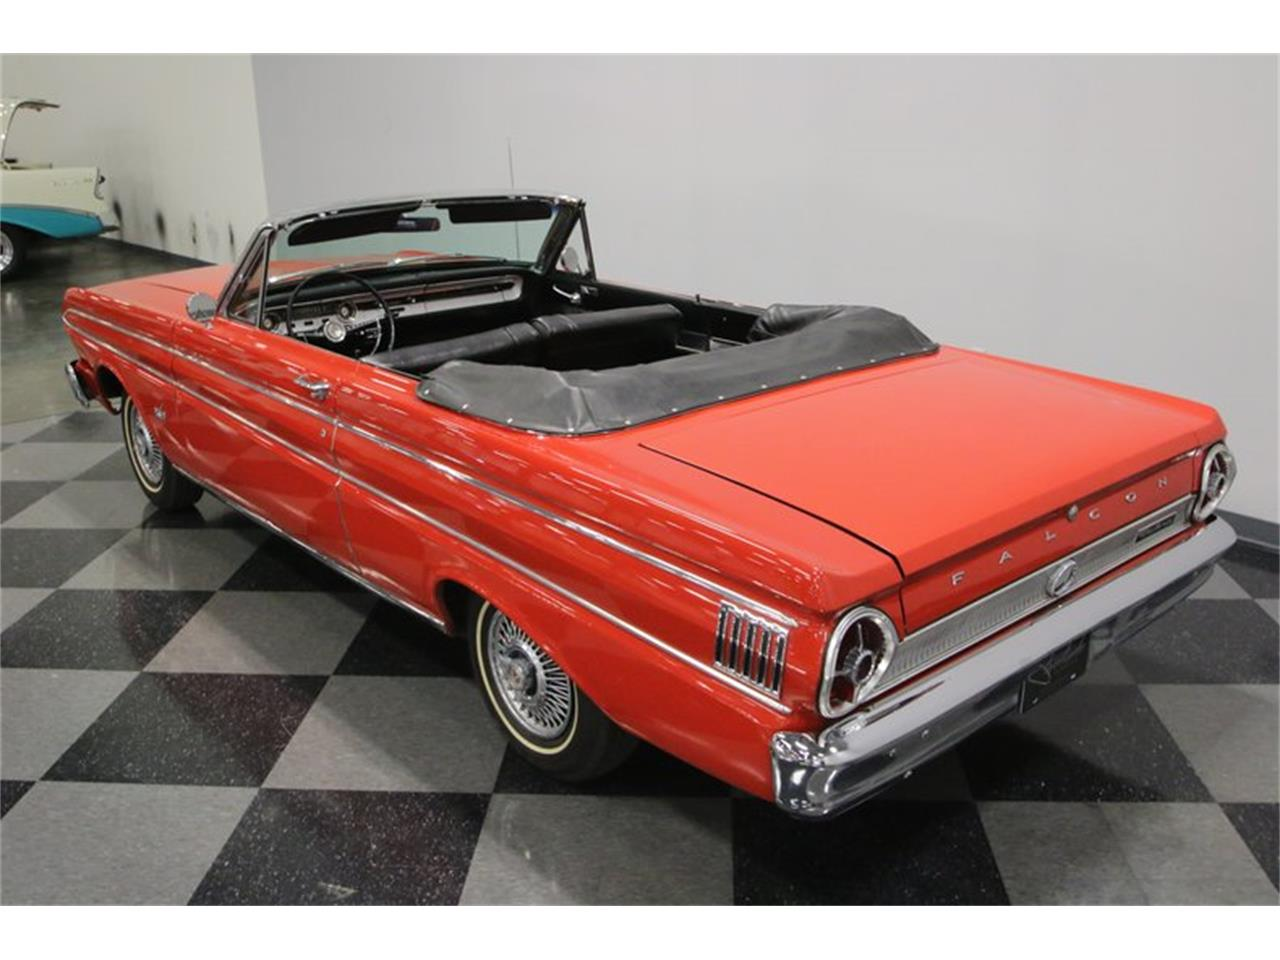 1964 Ford Falcon Futura for sale in Lavergne, TN – photo 25